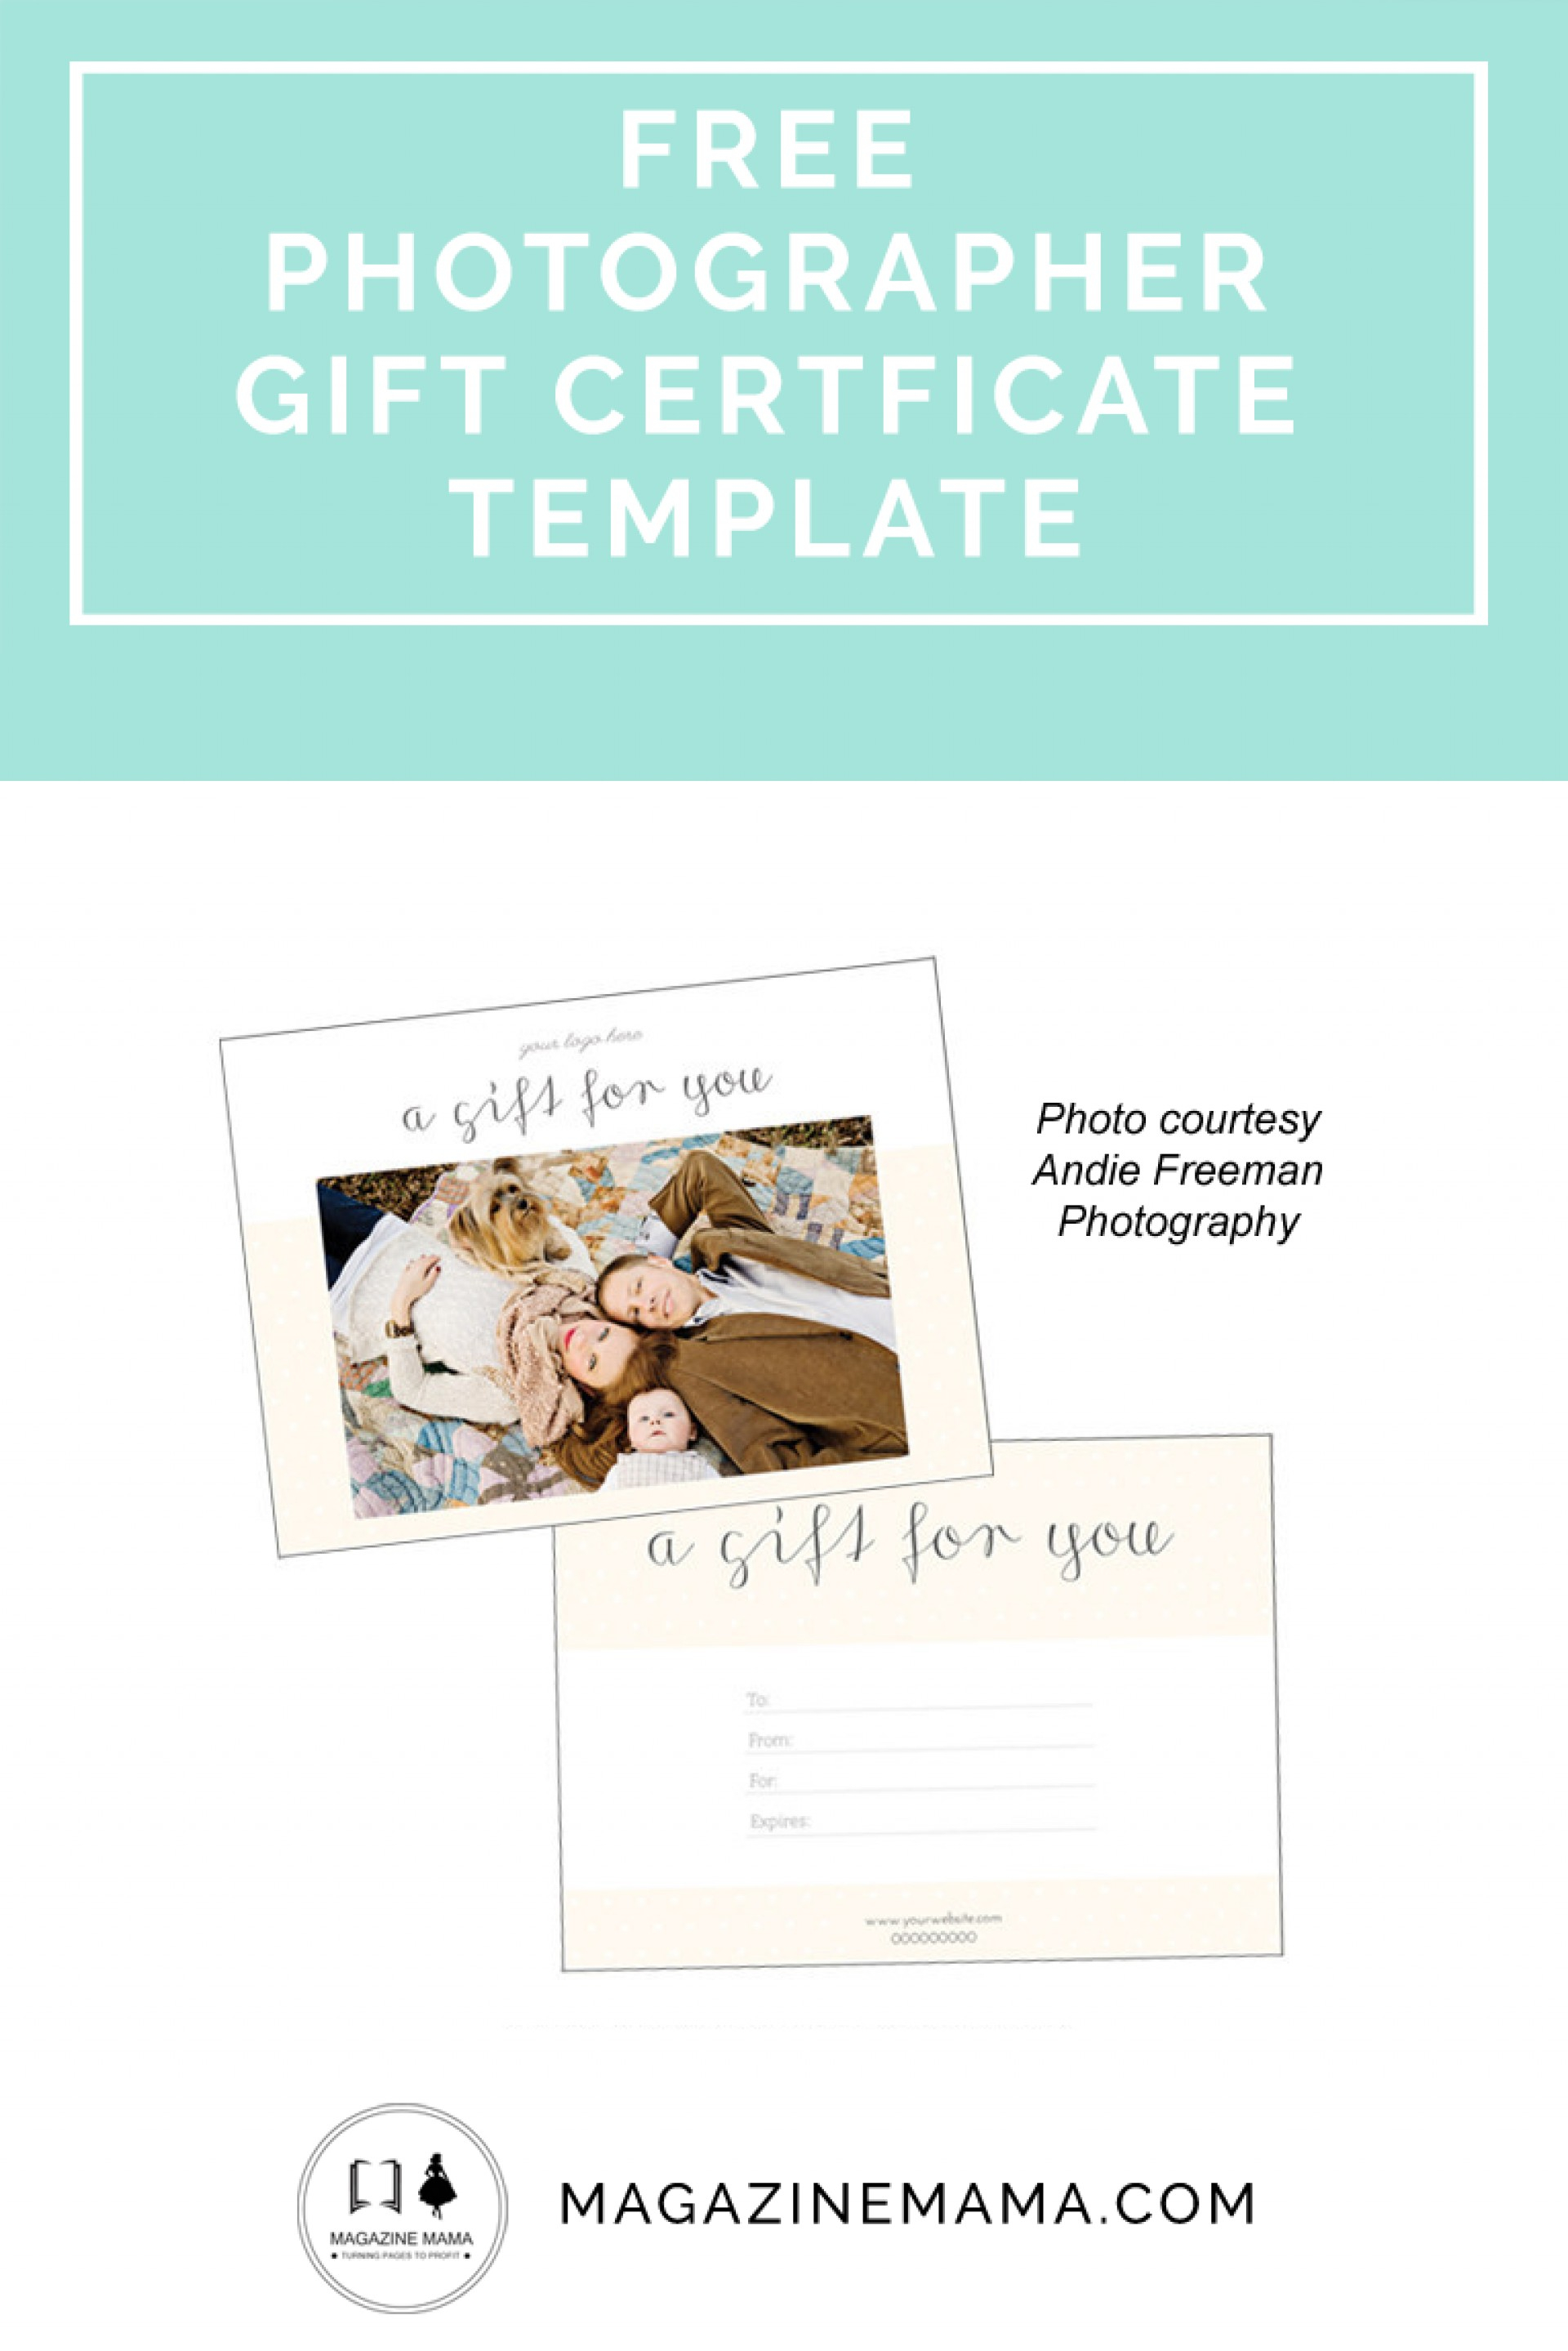 019 Printable Photography Gift Certificate Template Awesome Ideas - Free Printable Photography Gift Certificate Template